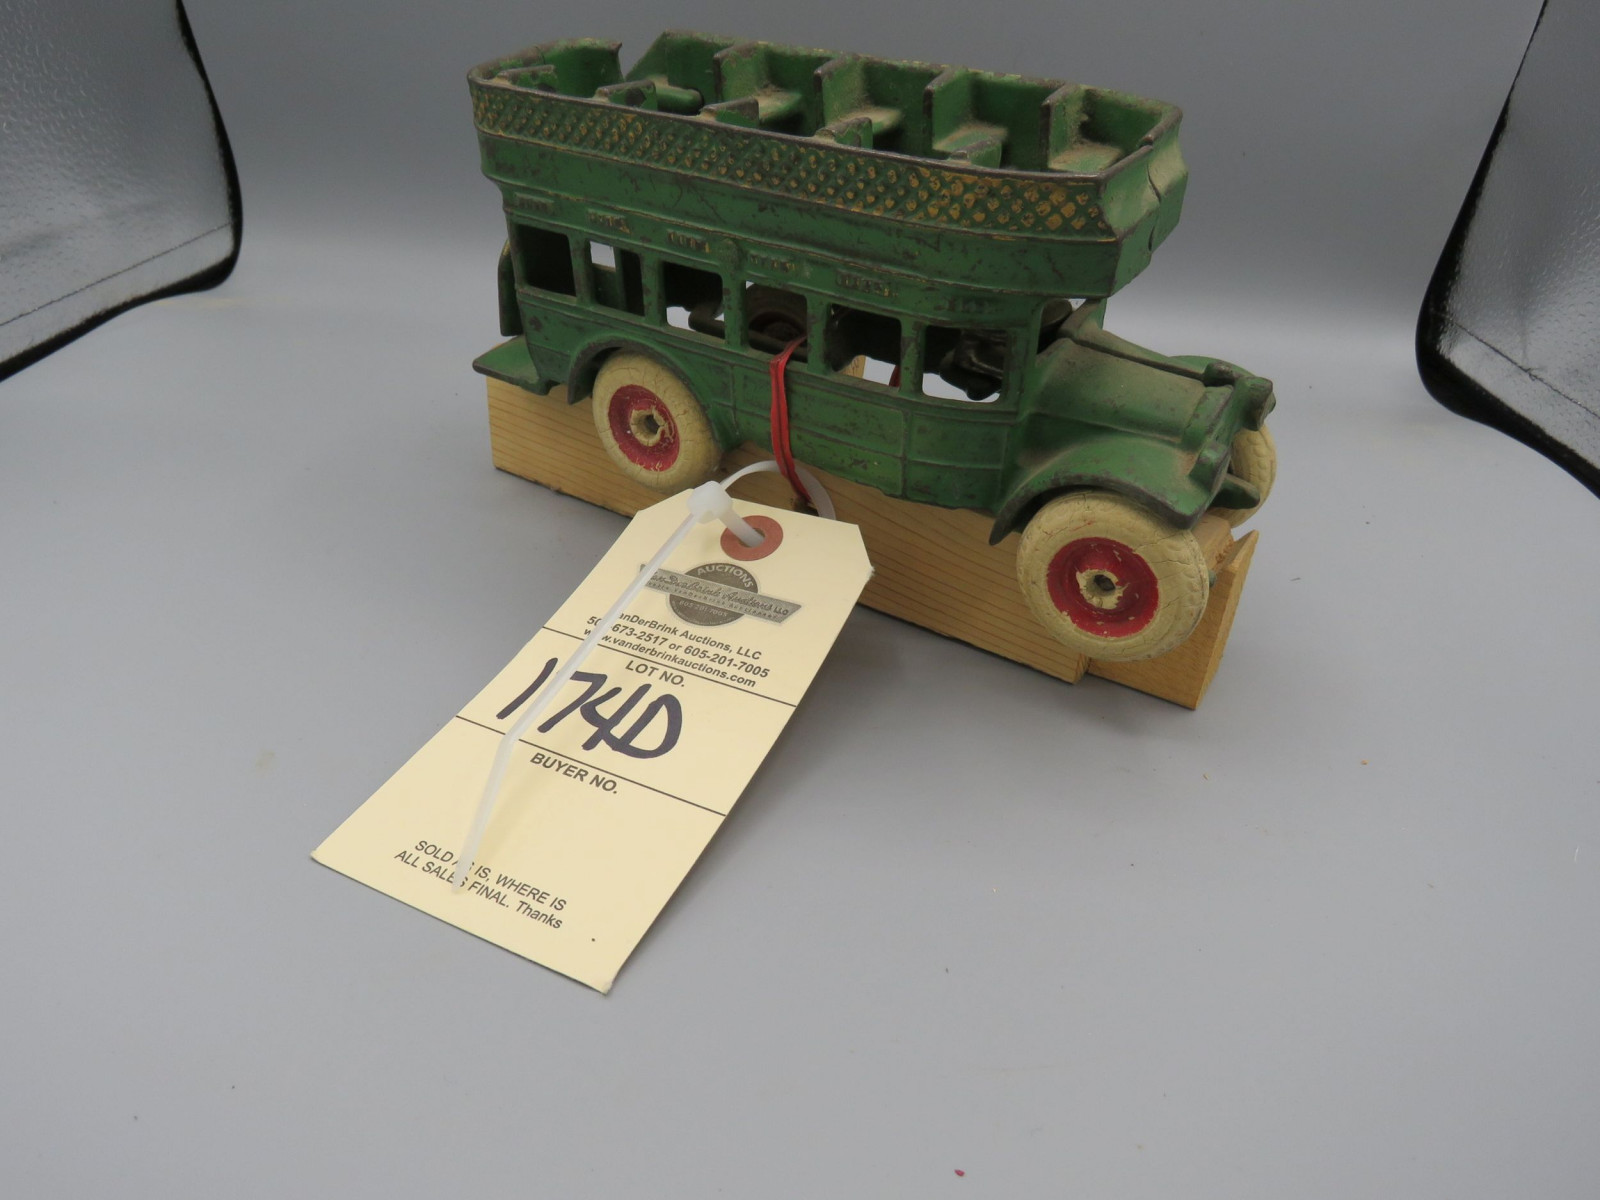 Arcade Cast Iron double Decker Bus @1939 Approx. 8 inches - Image 1